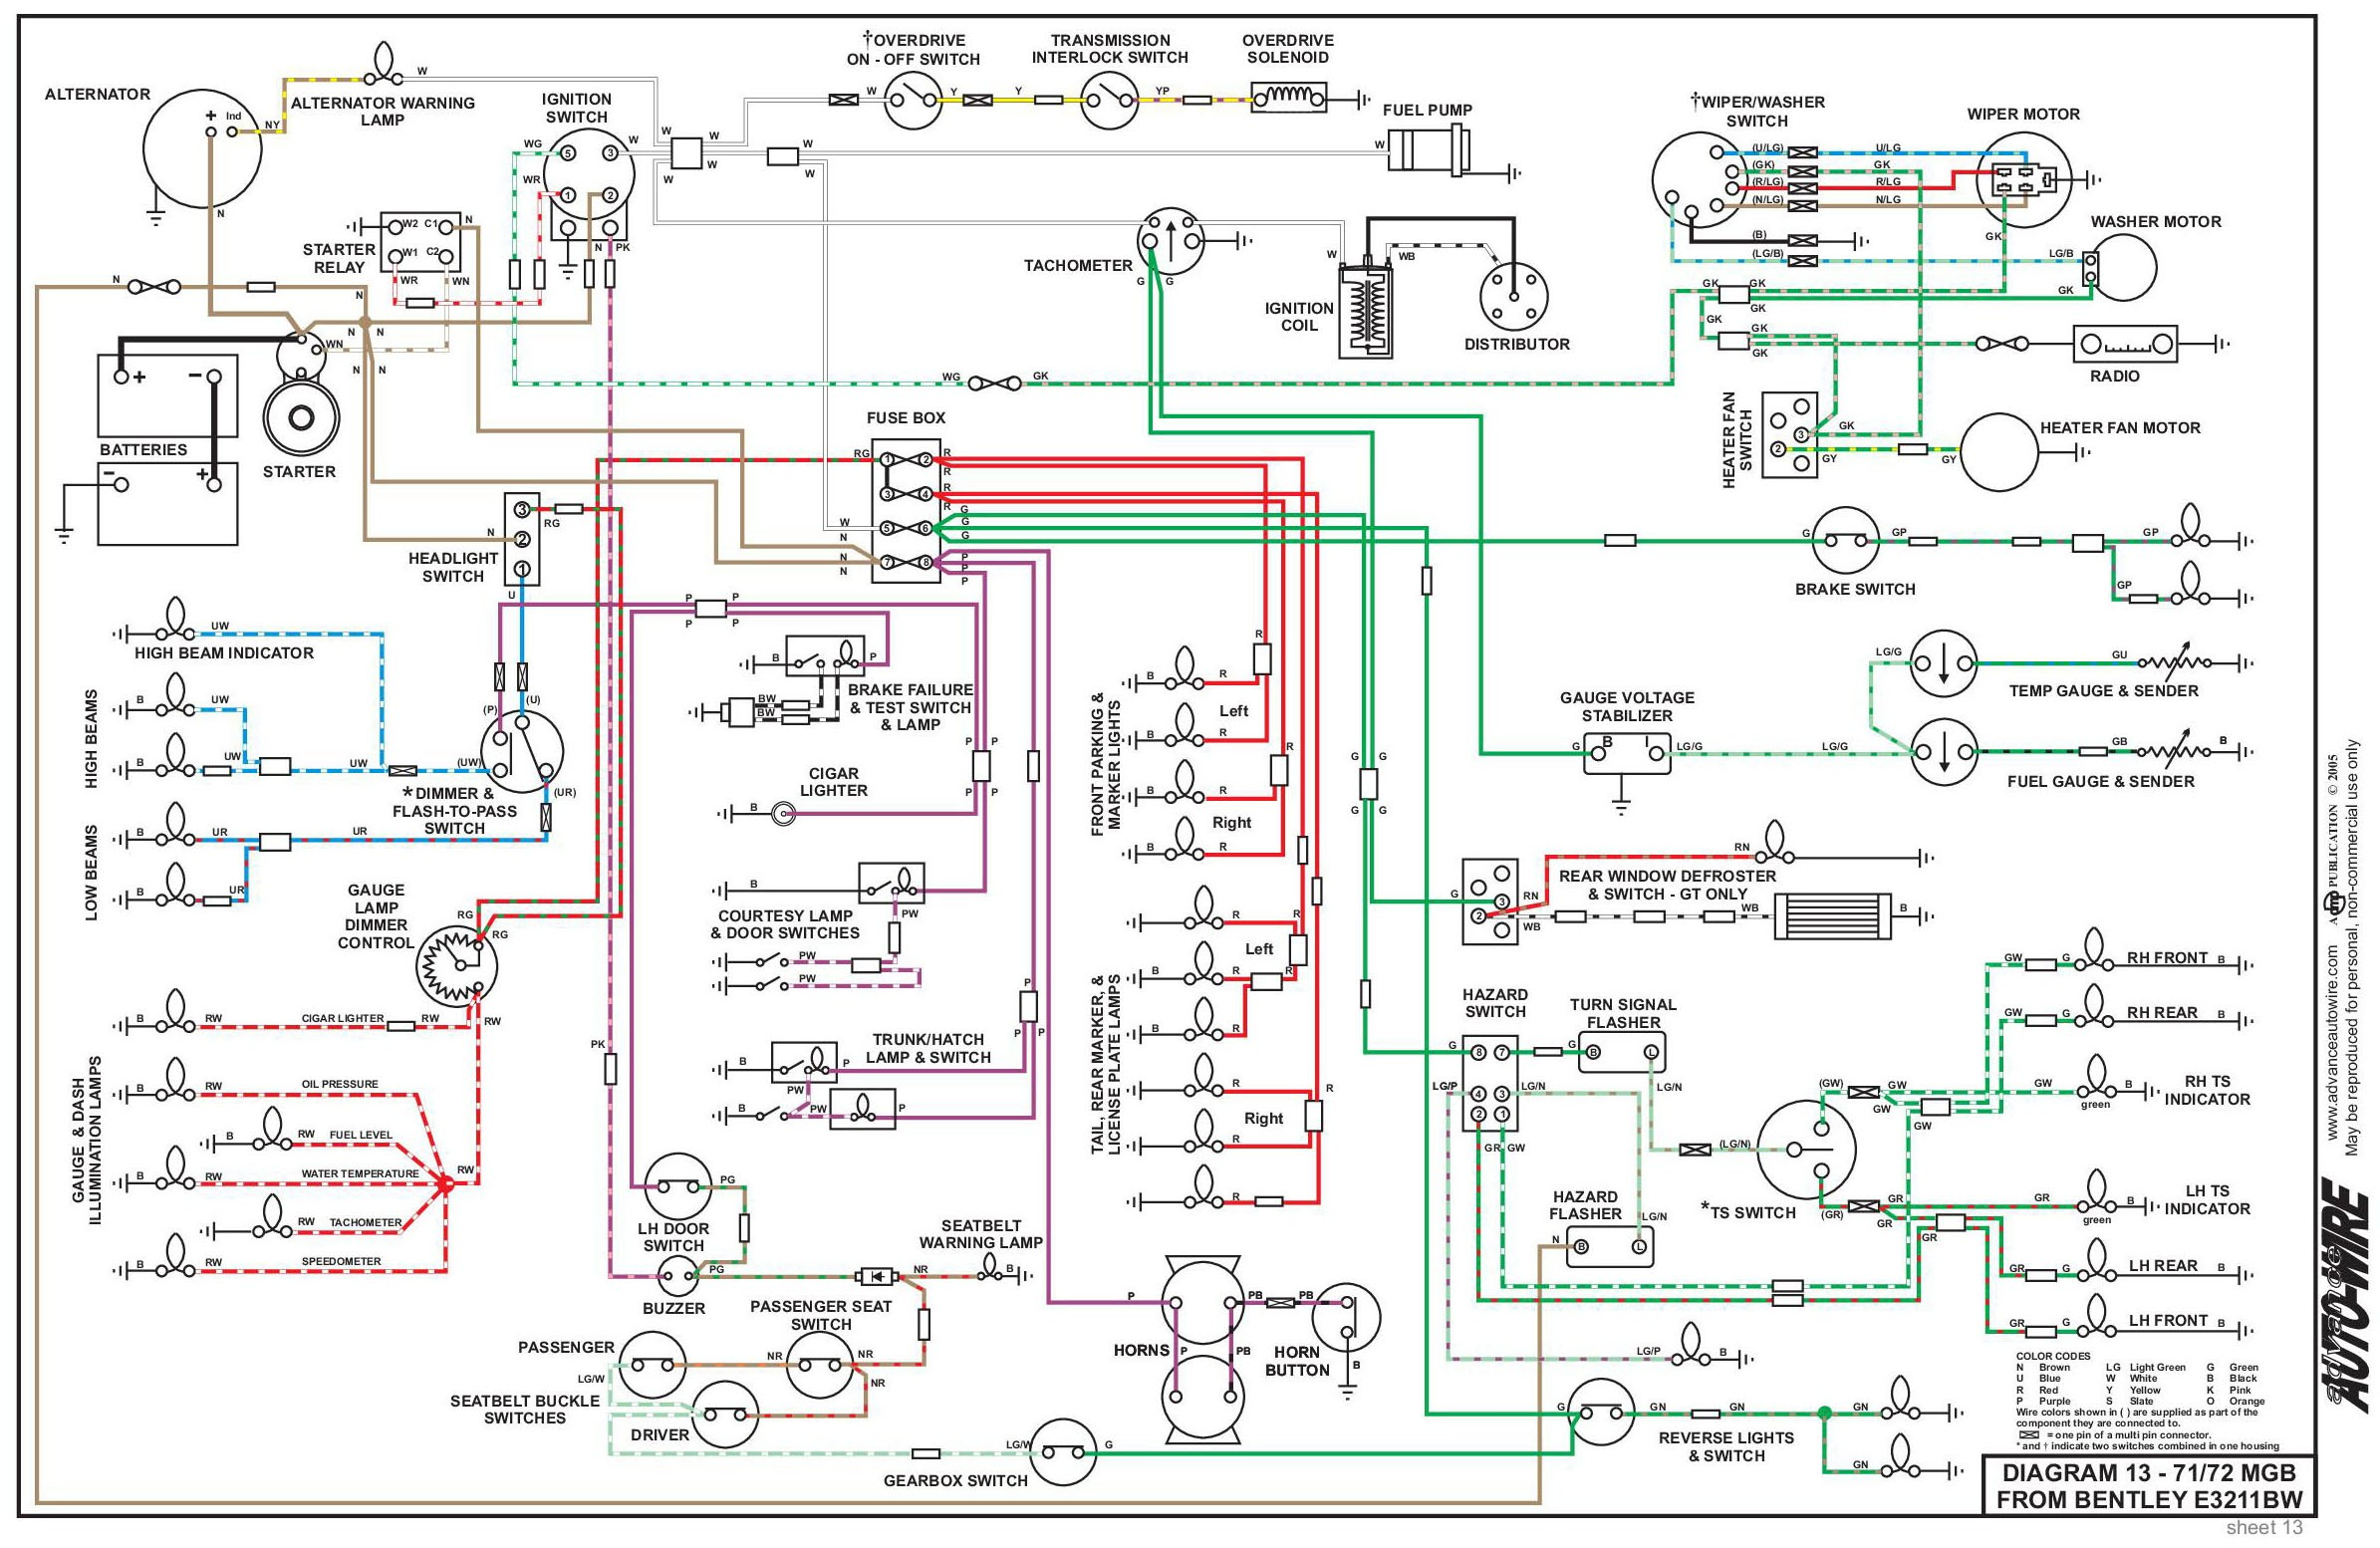 Electronic Turn Signal Flasher Schematic Electrical System Of Electronic Turn Signal Flasher Schematic